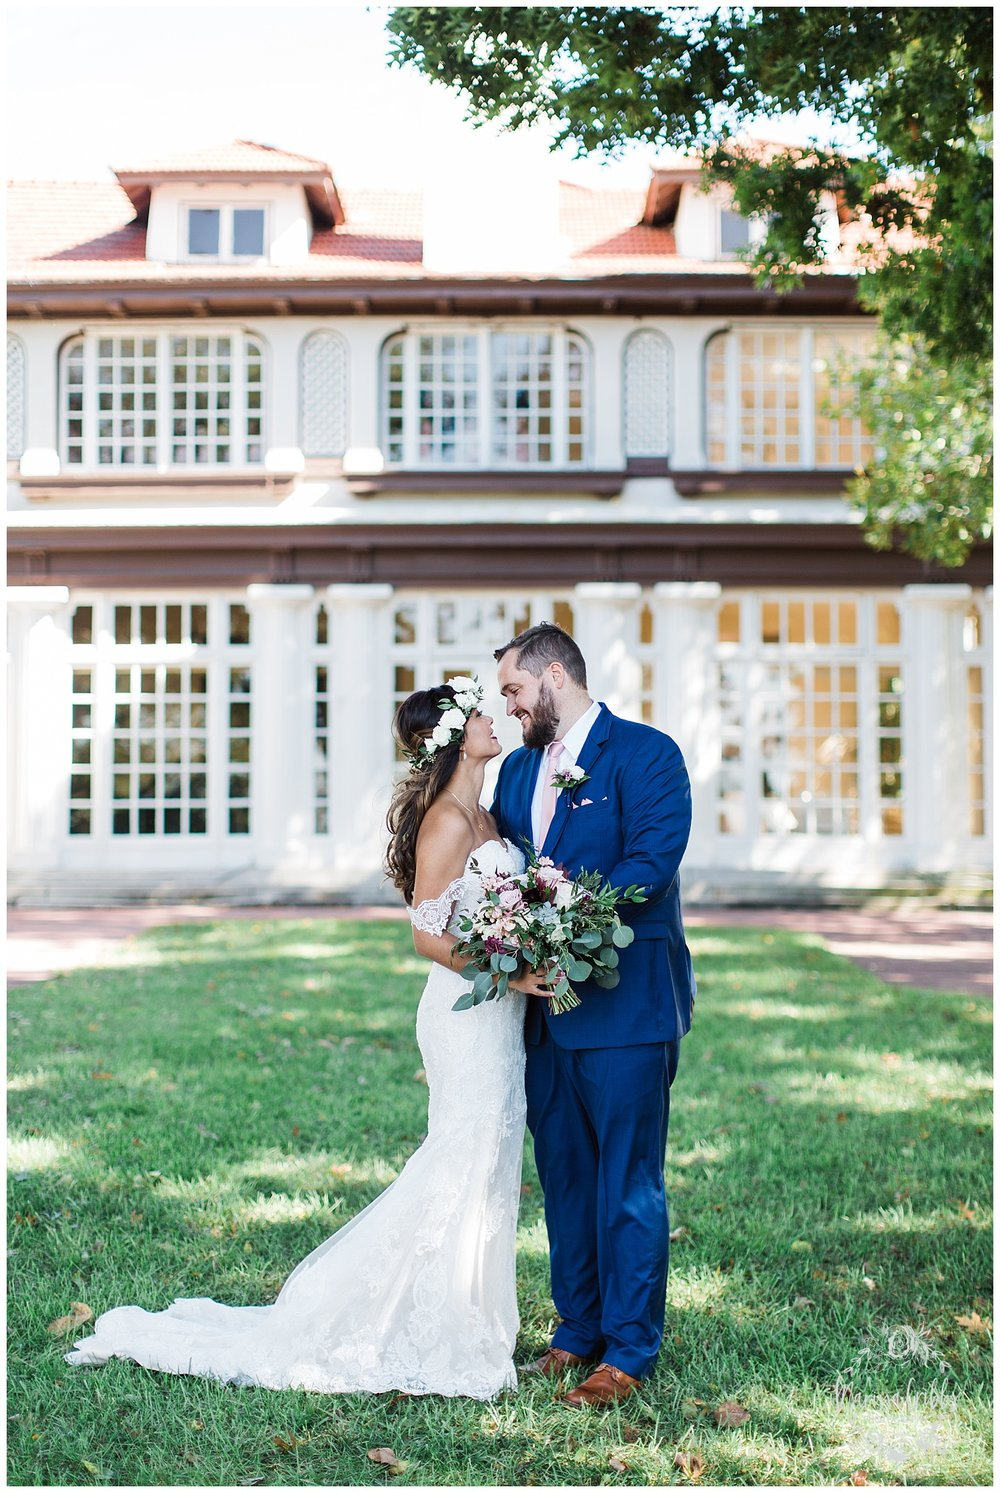 LONGVIEW MANSION WEDDING | MARISSA CRIBBS PHOTOGRAPHY_3215.jpg